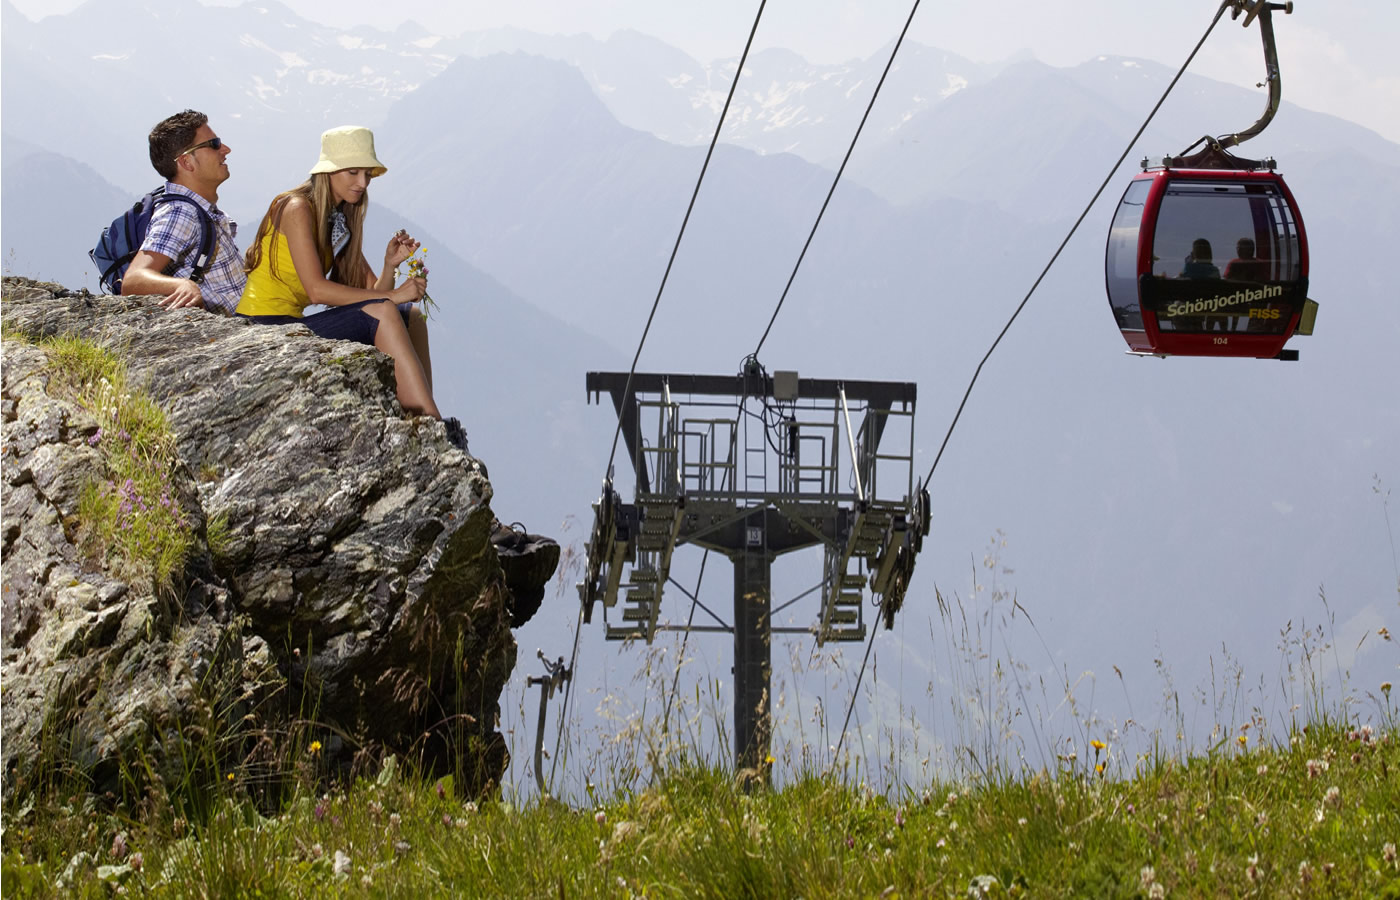 Super.Sommer.Card in Serfaus-Fiss-Ladis in Tirol.